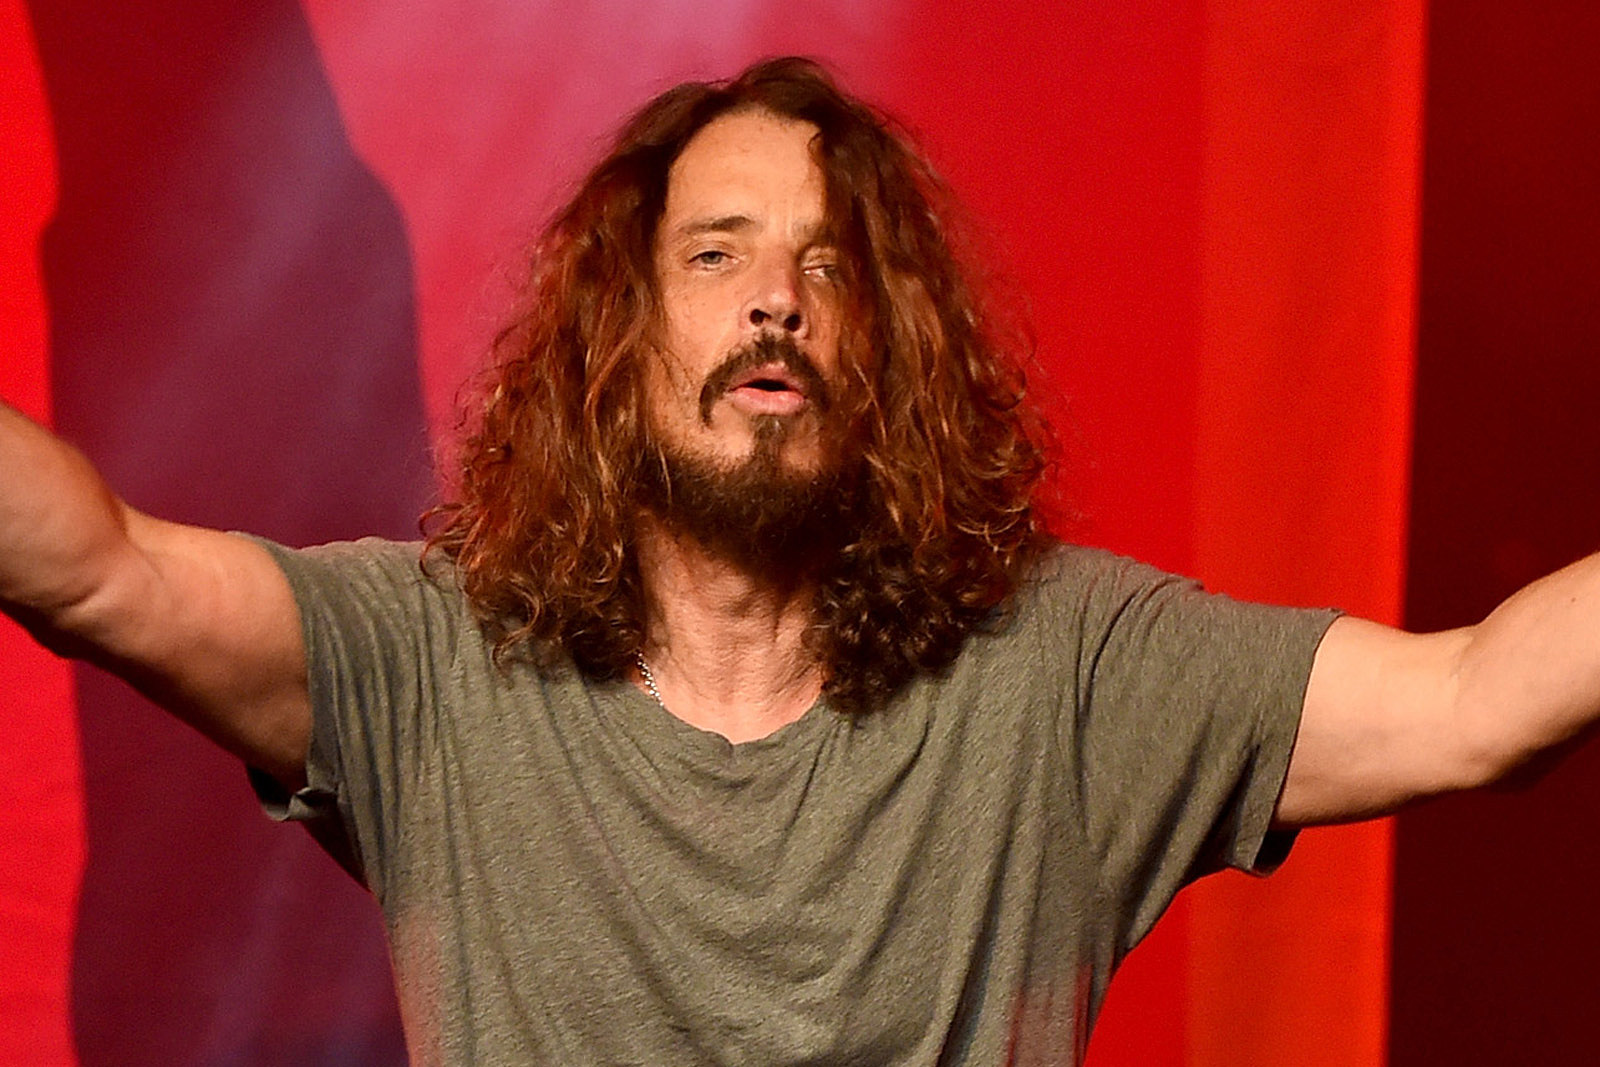 See the First Picture of the Chris Cornell Statue